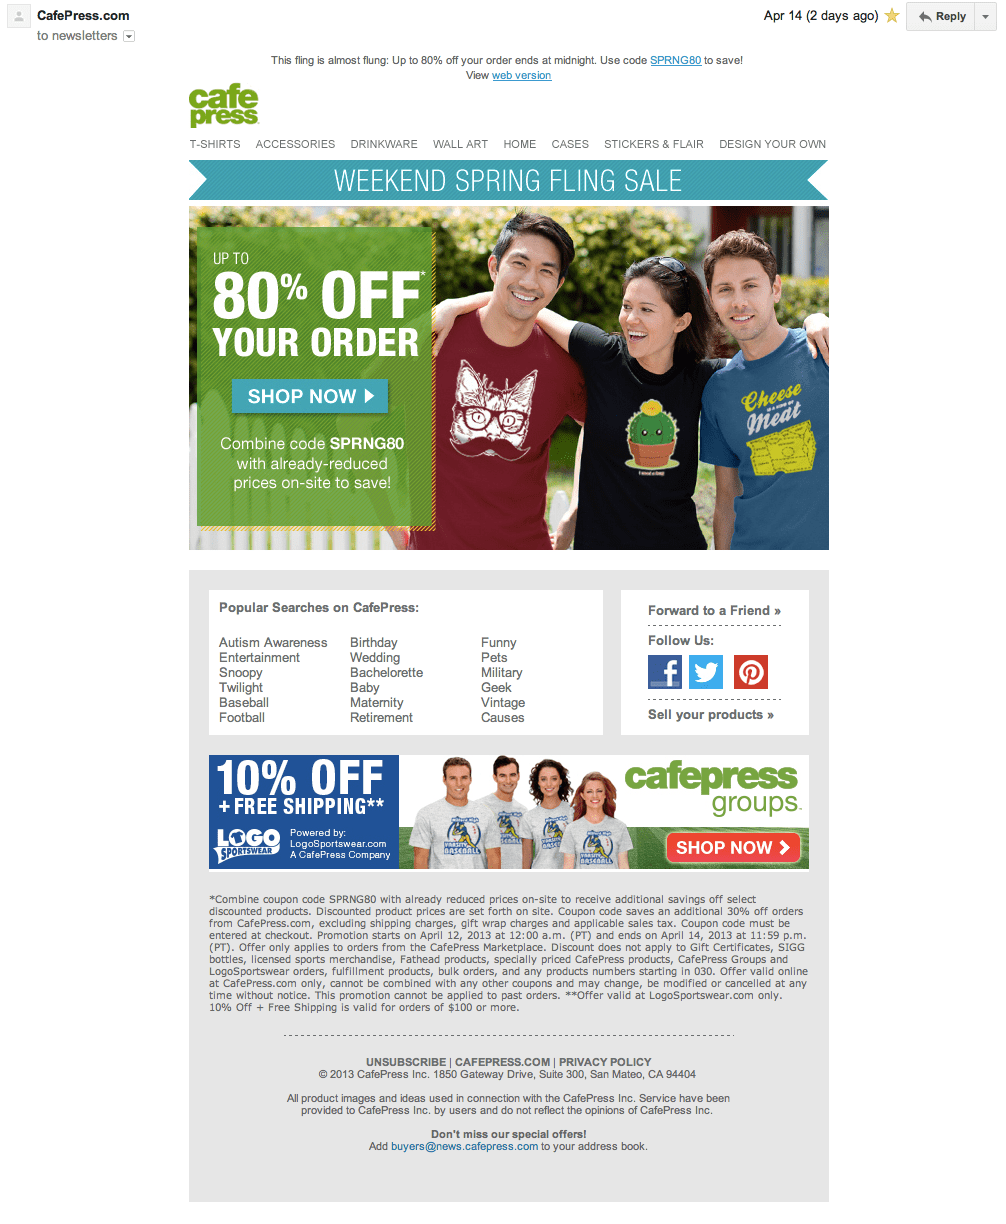 CafePress Email Marketing